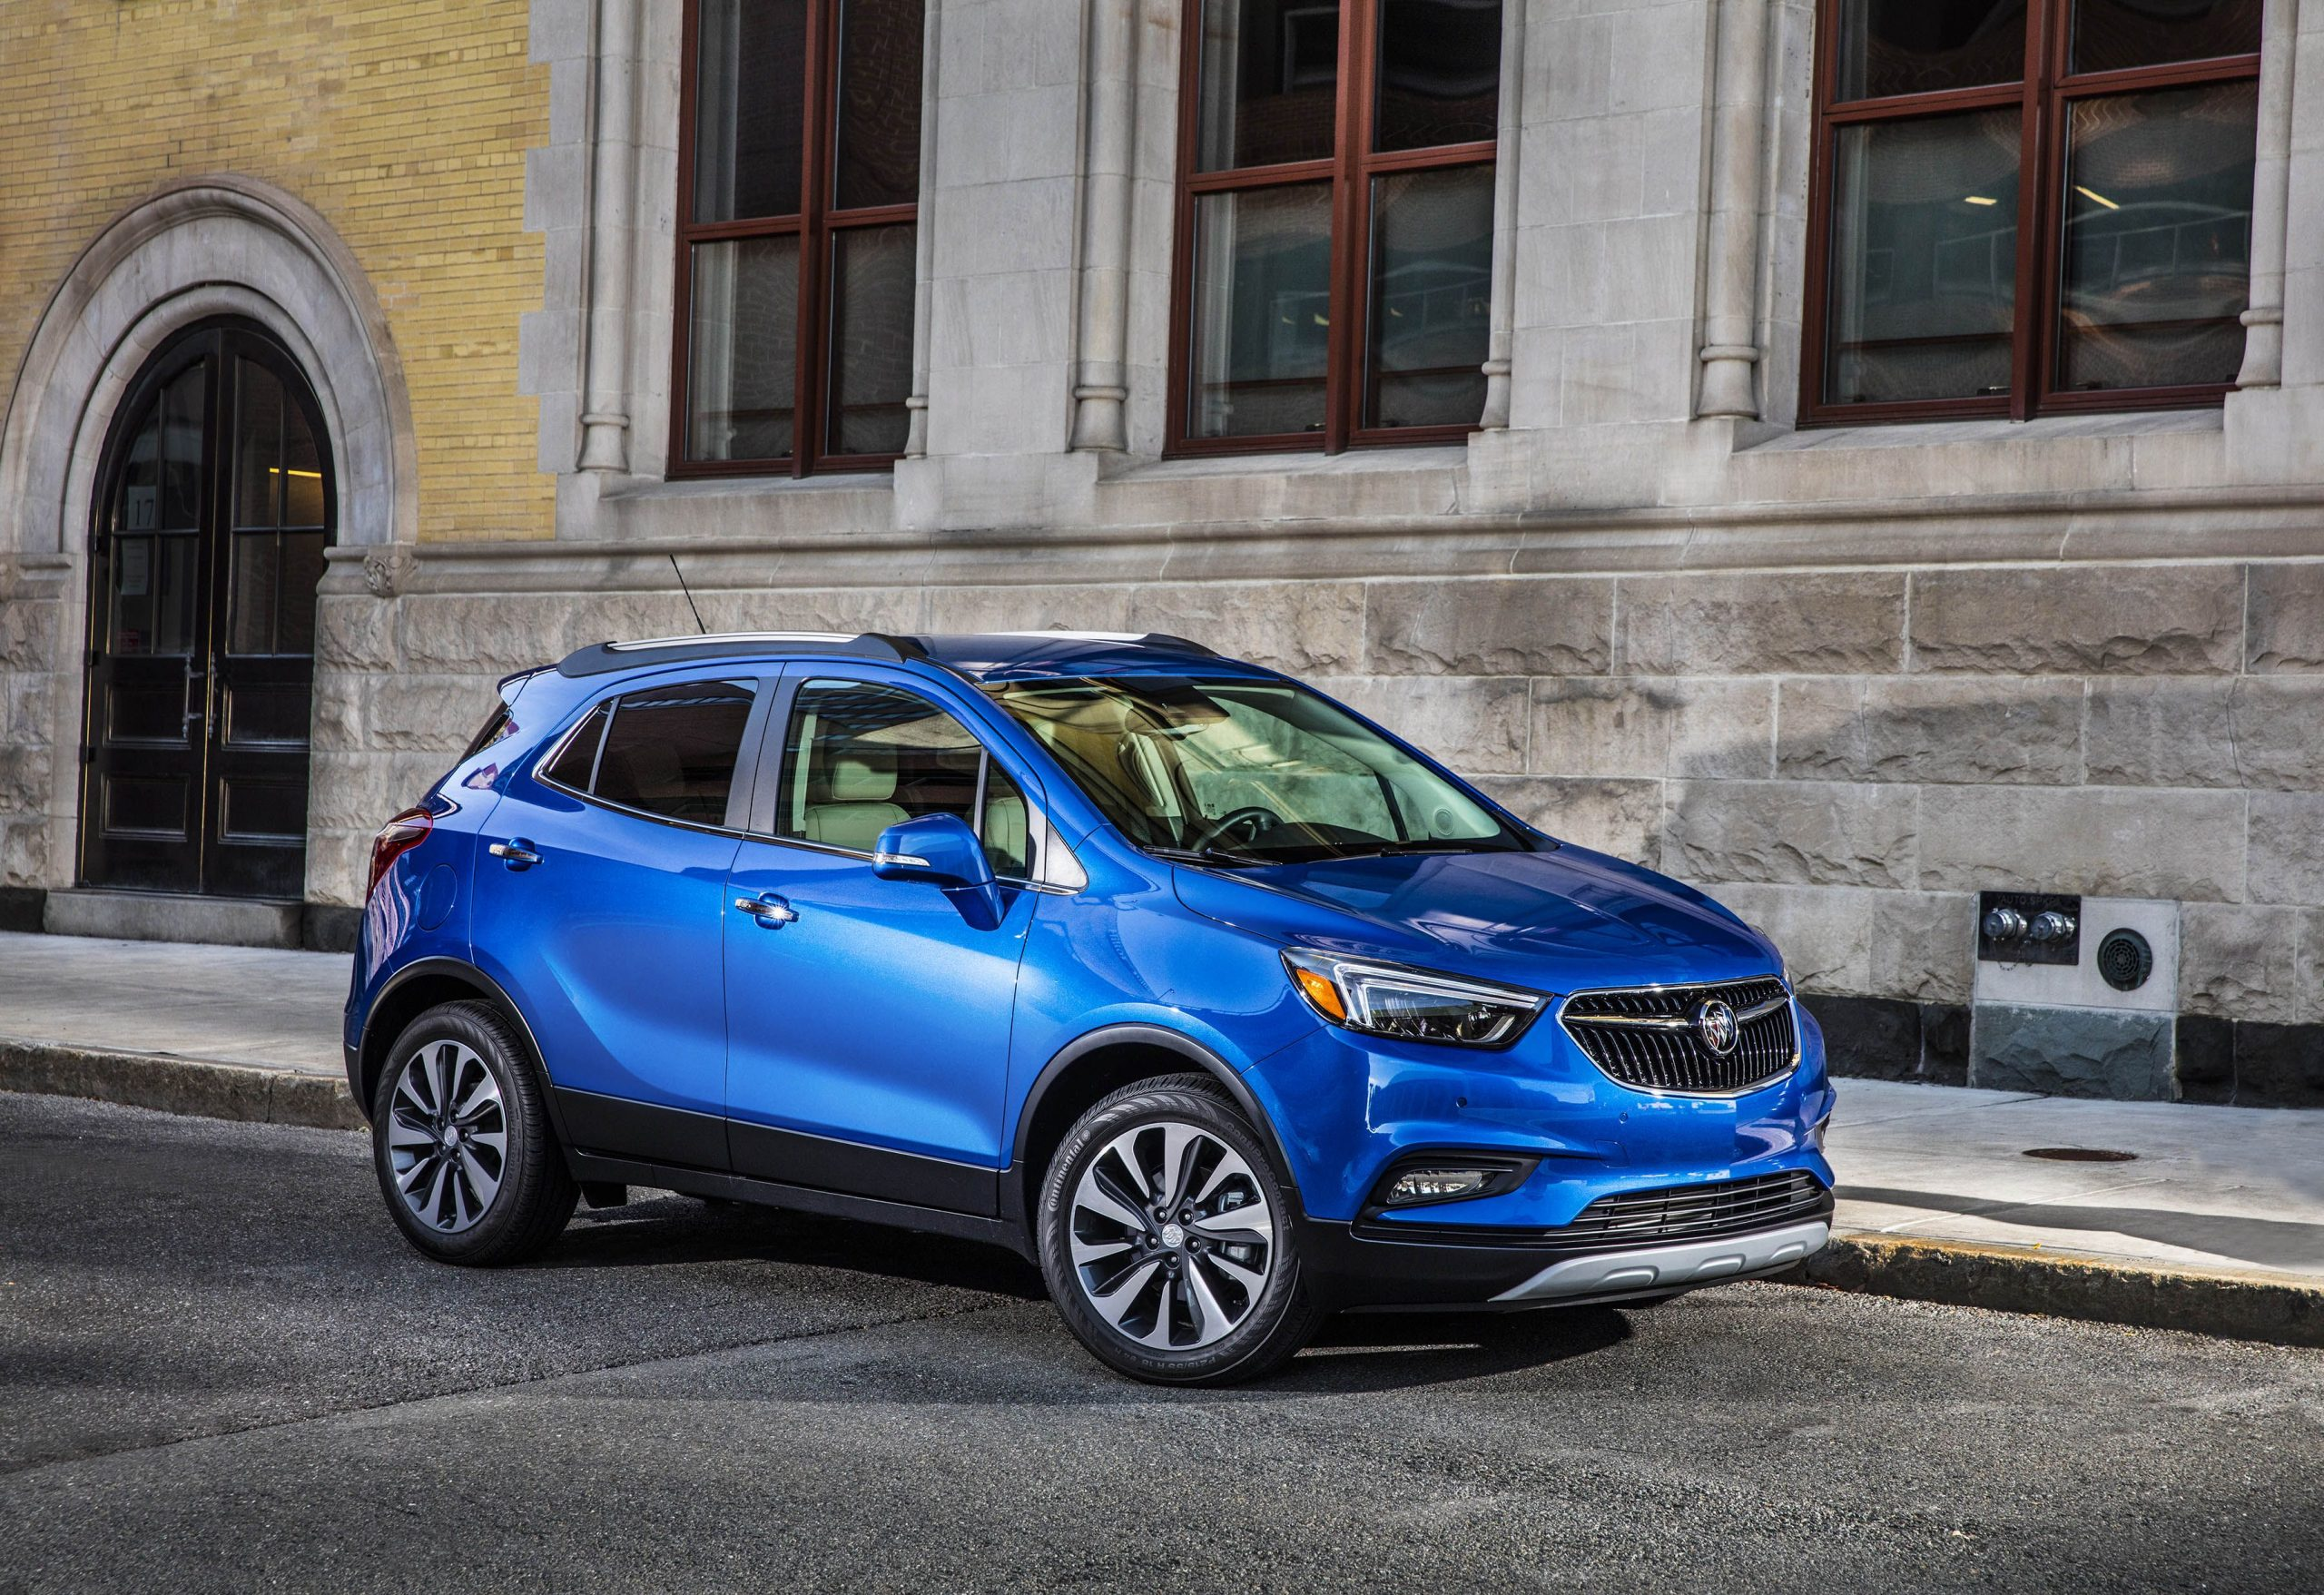 2020 Buick Encore Review, Pricing, And Specs 2022 Buick Encore Gx Safety Rating, Specifications, Tire Size